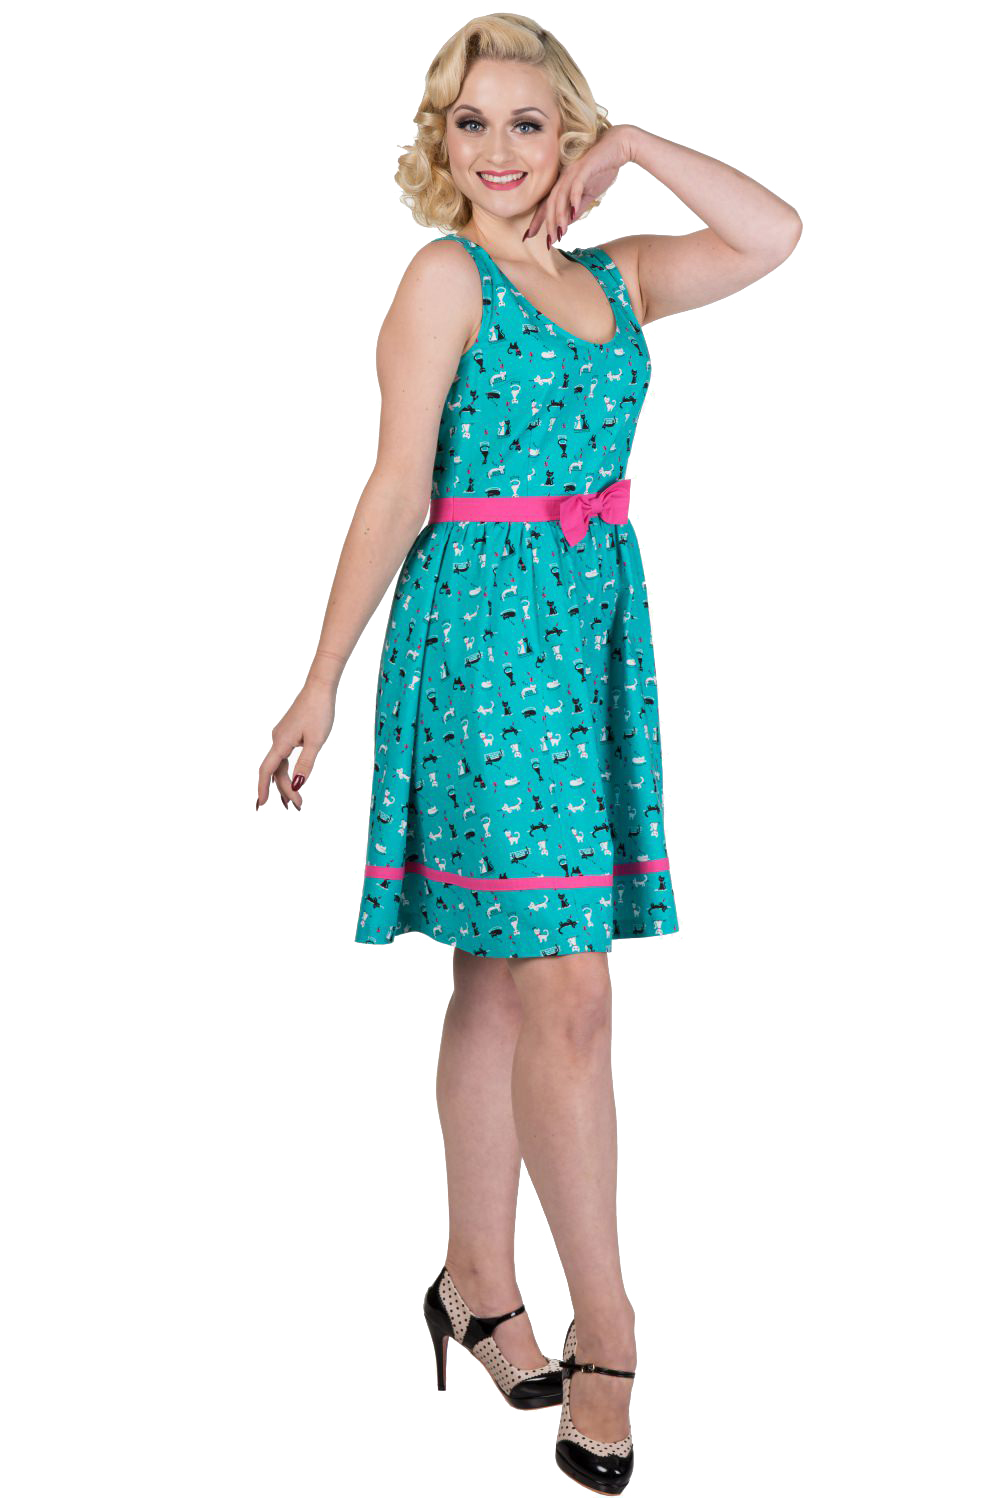 Dancing Days By Banned Bright Lights Dress